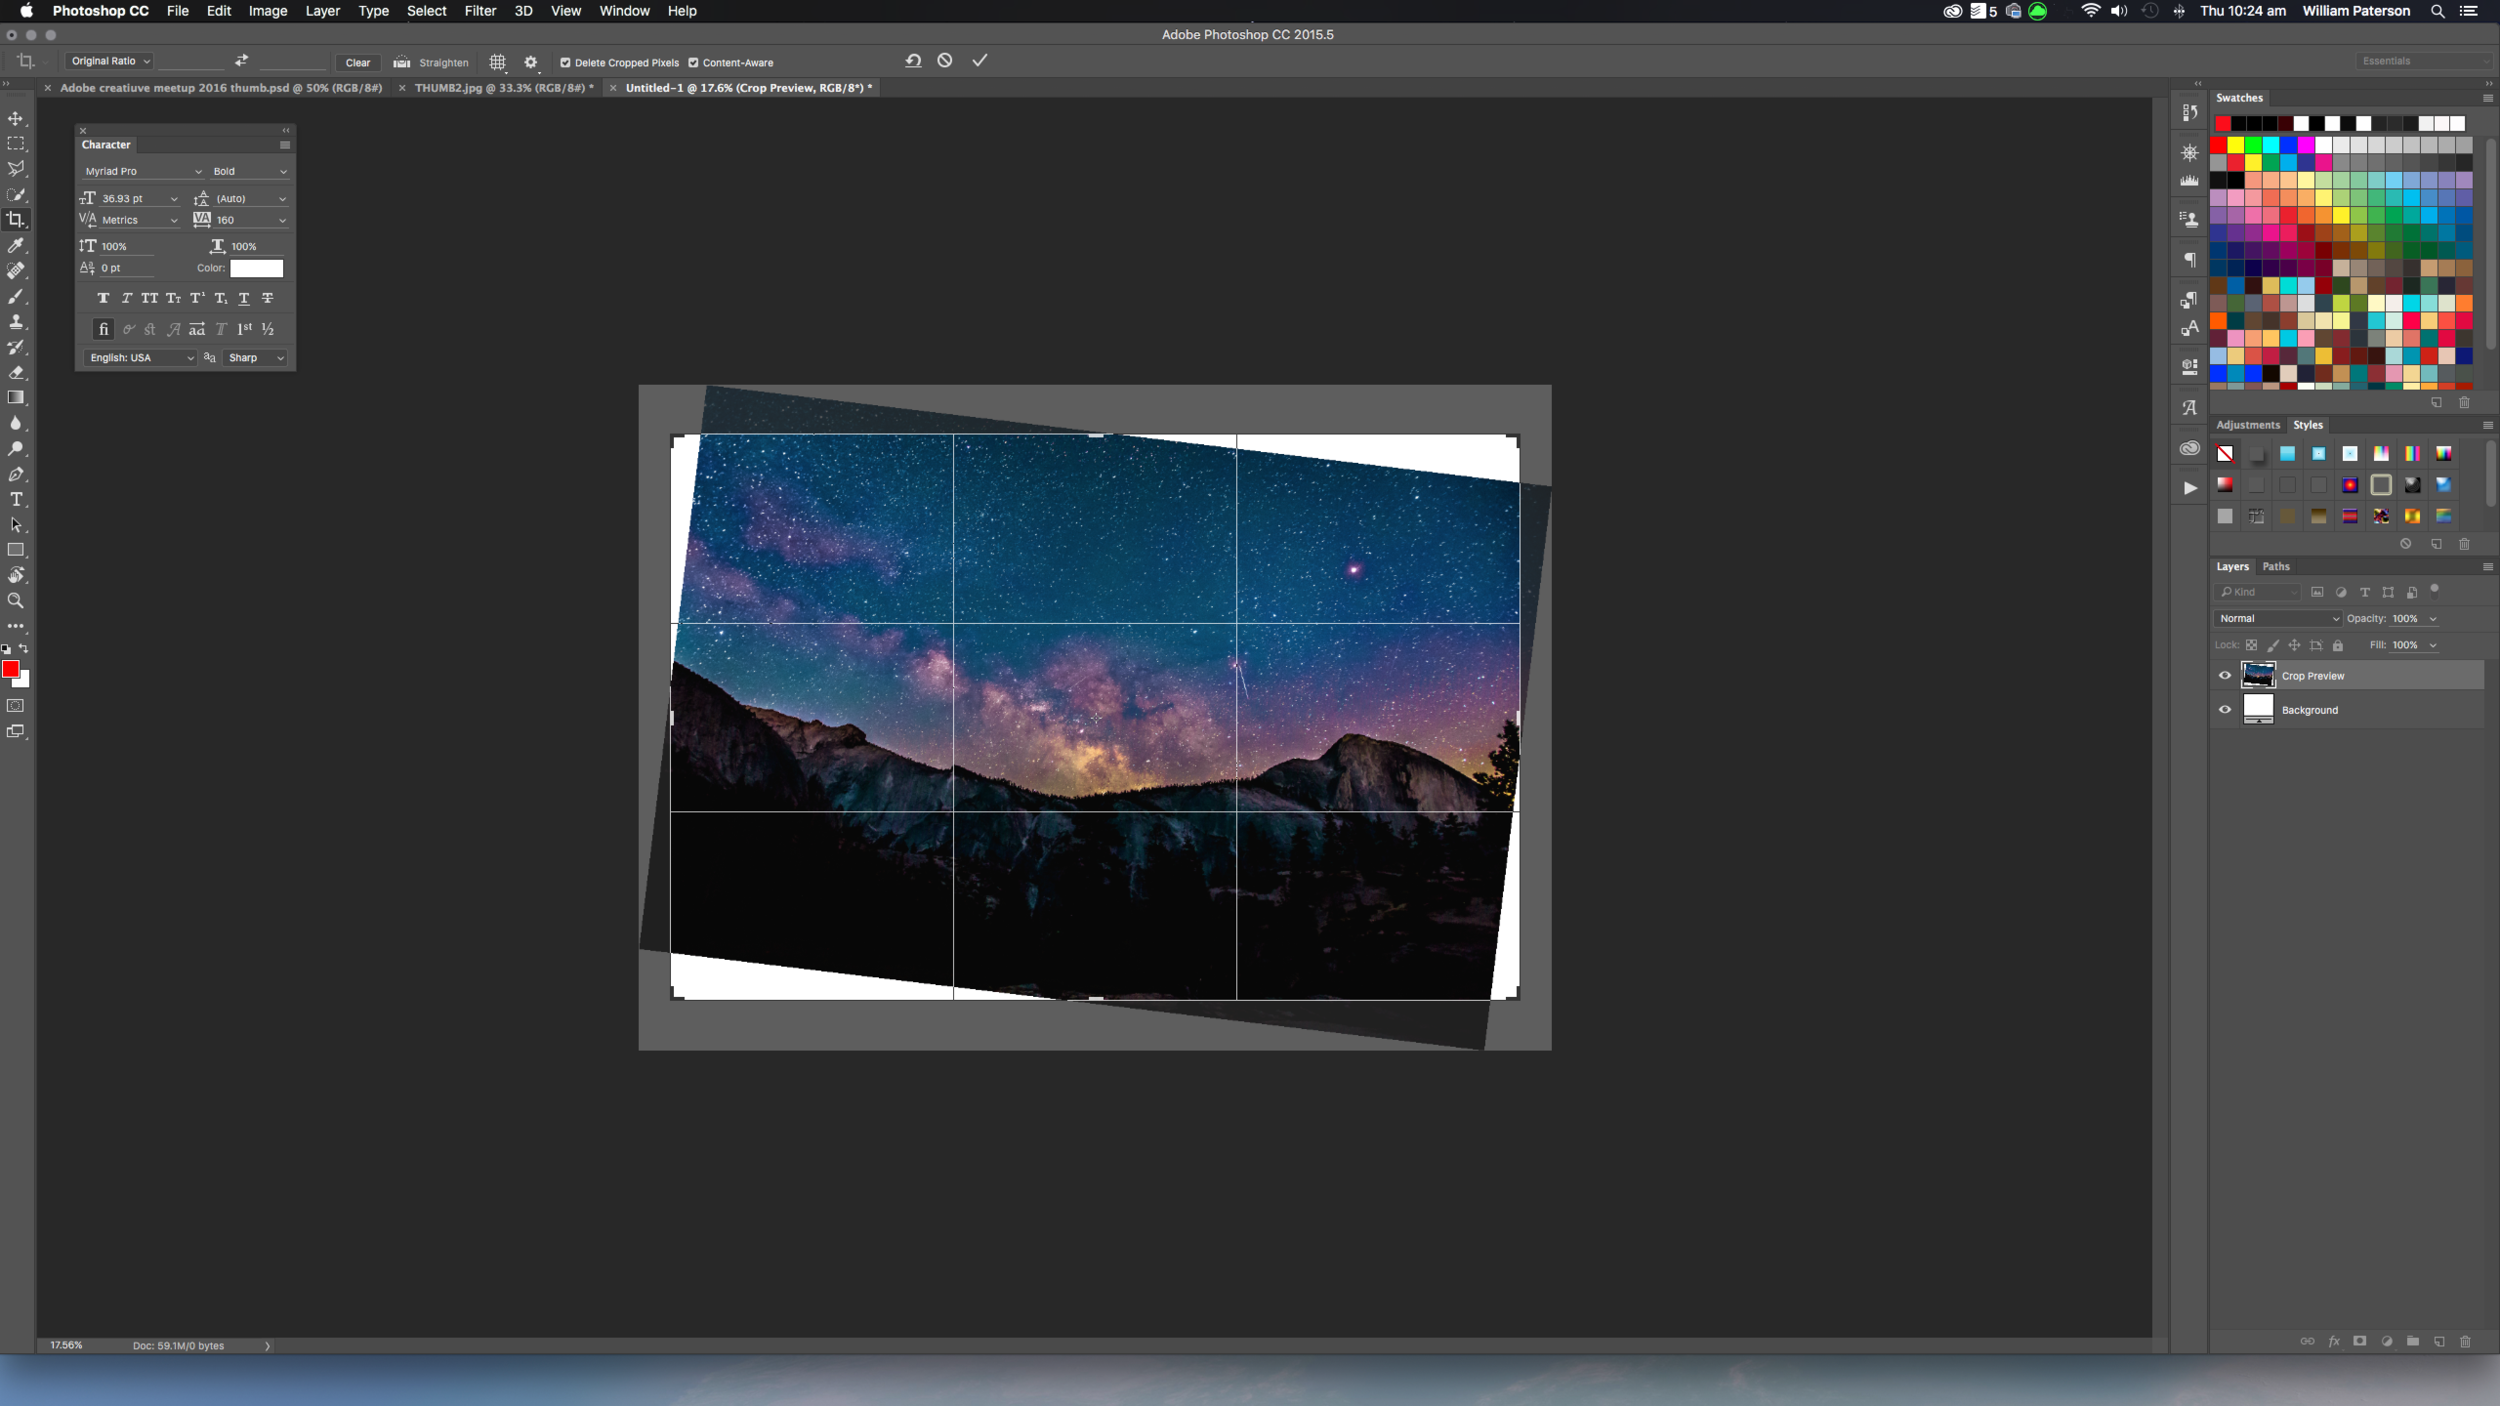 I'm using the Content Aware function to create more of the image as I'm changing the horizon line.